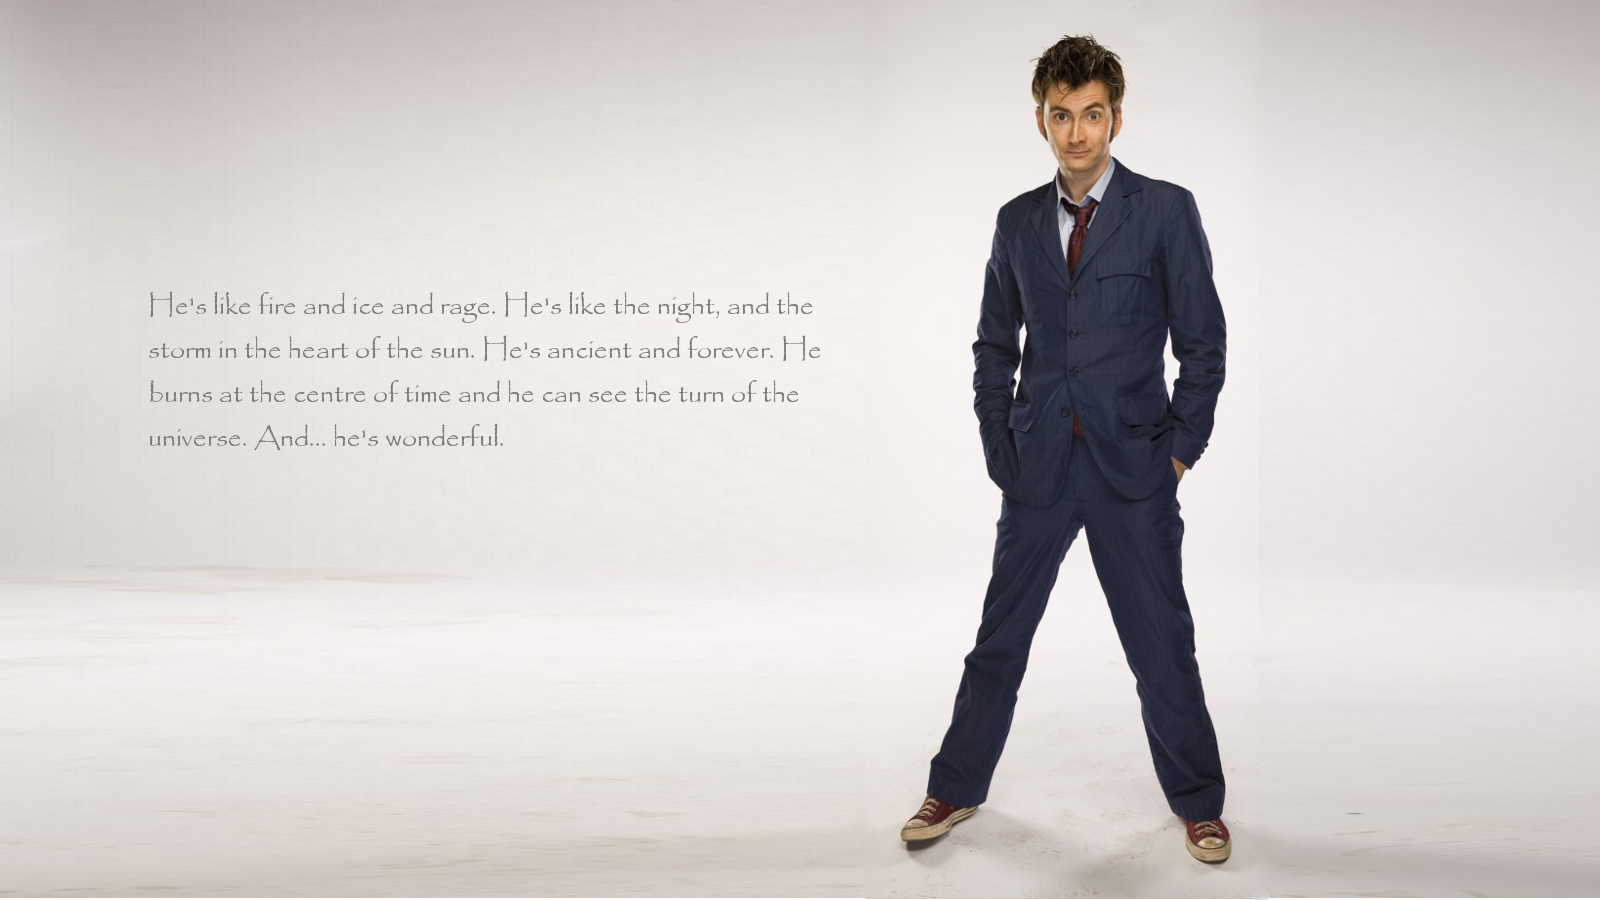 Ramblings of a Reader: Ten things I learned from Doctor Who